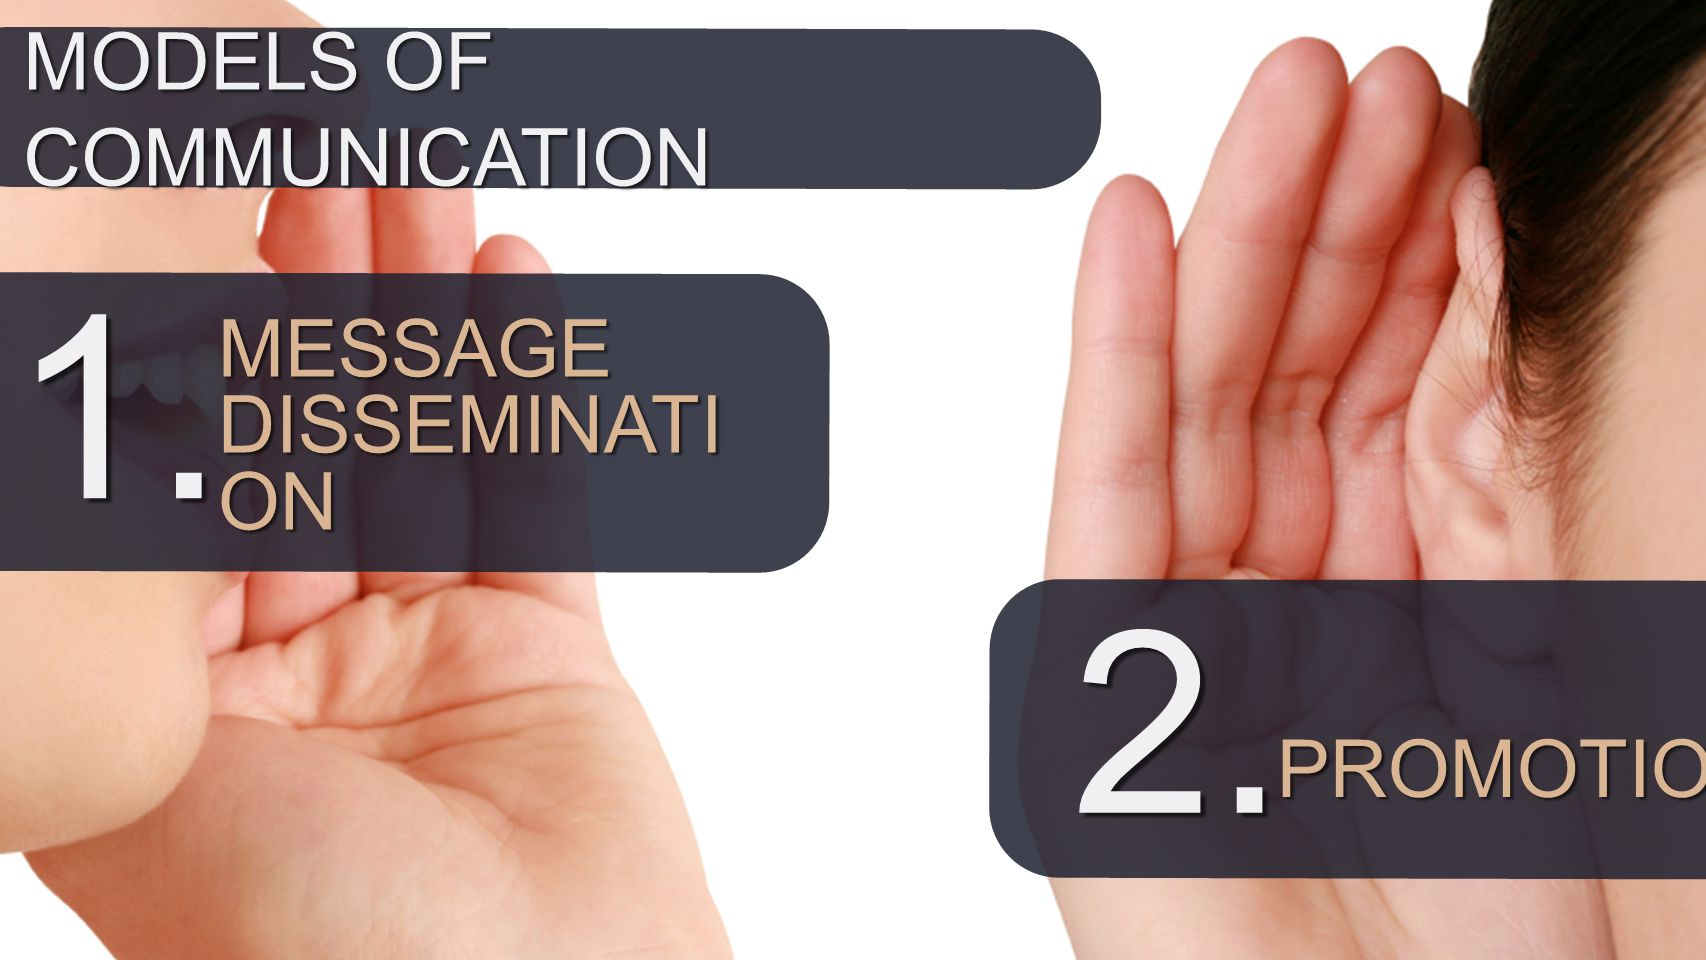 MESSAGE DISSEMINATI ON MESSAGE DISSEMINATI ON 1. PROMOTION 2. MODELS OF COMMUNICATION